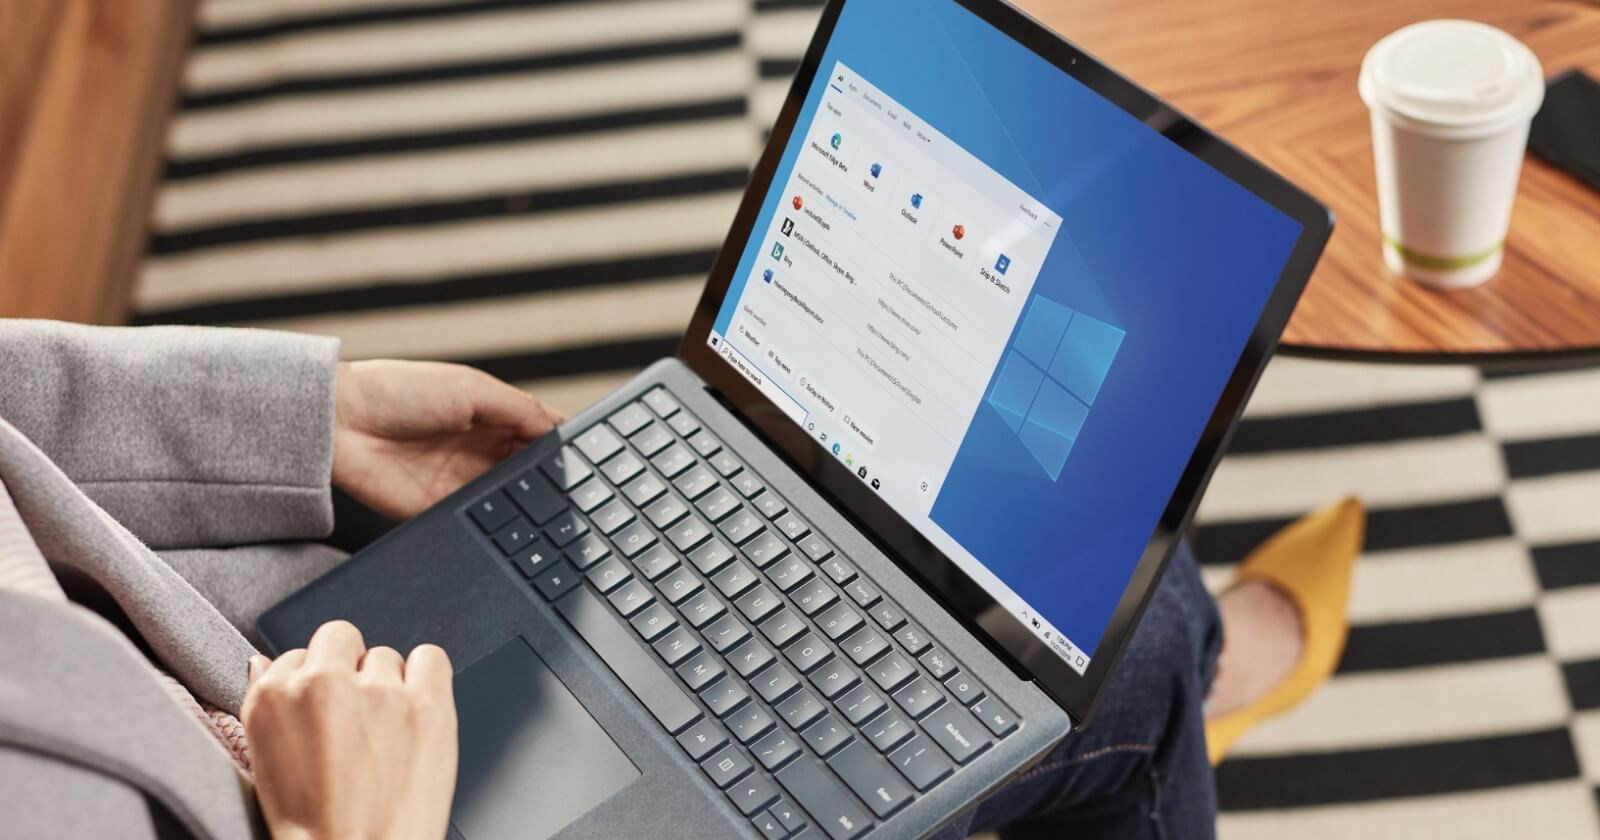 Microsoft confirms to fix a Windows 10 bug that corrupts hard drives